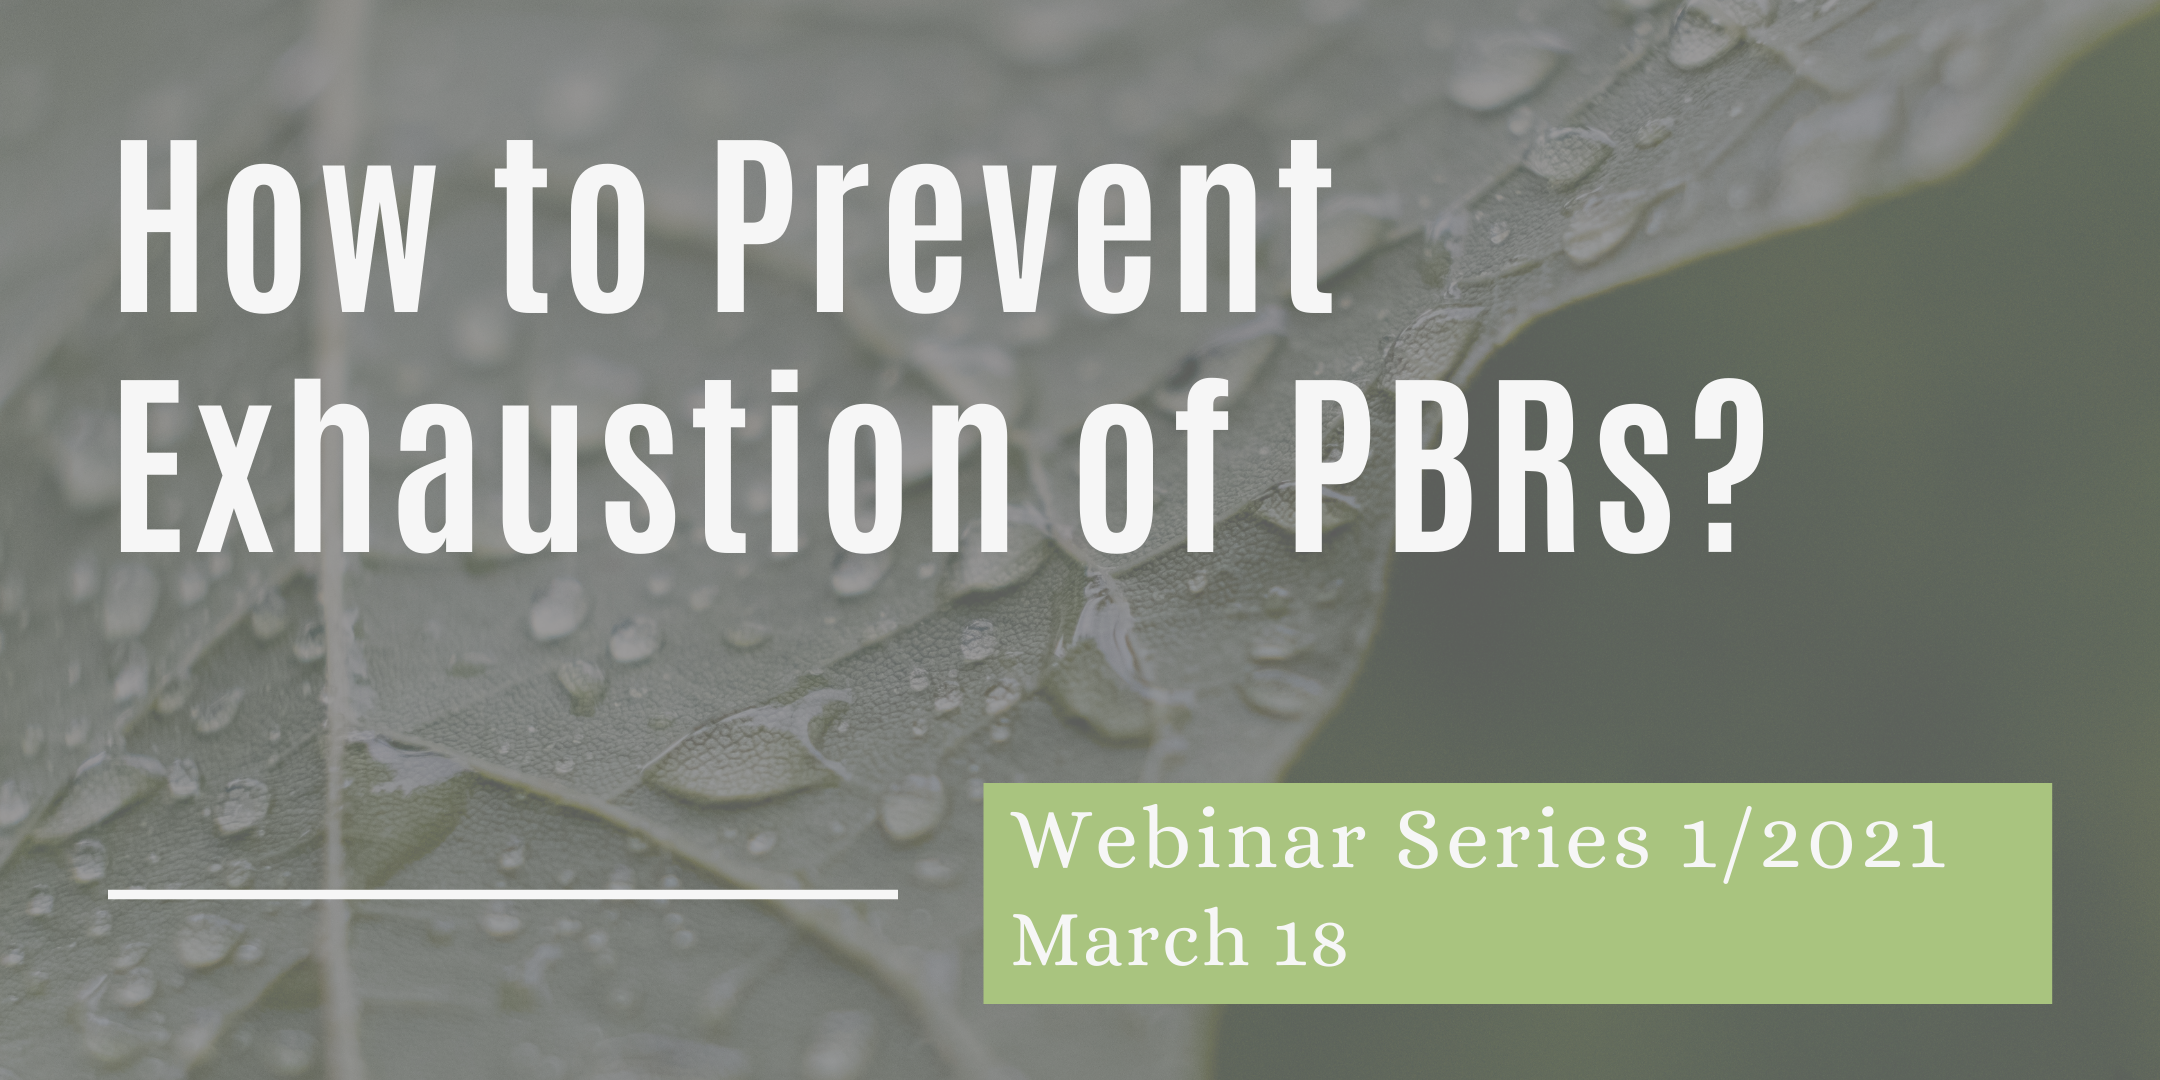 18/03/2021 – How to Prevent Exhaustion of PVRs on Plants and Harvested Material?